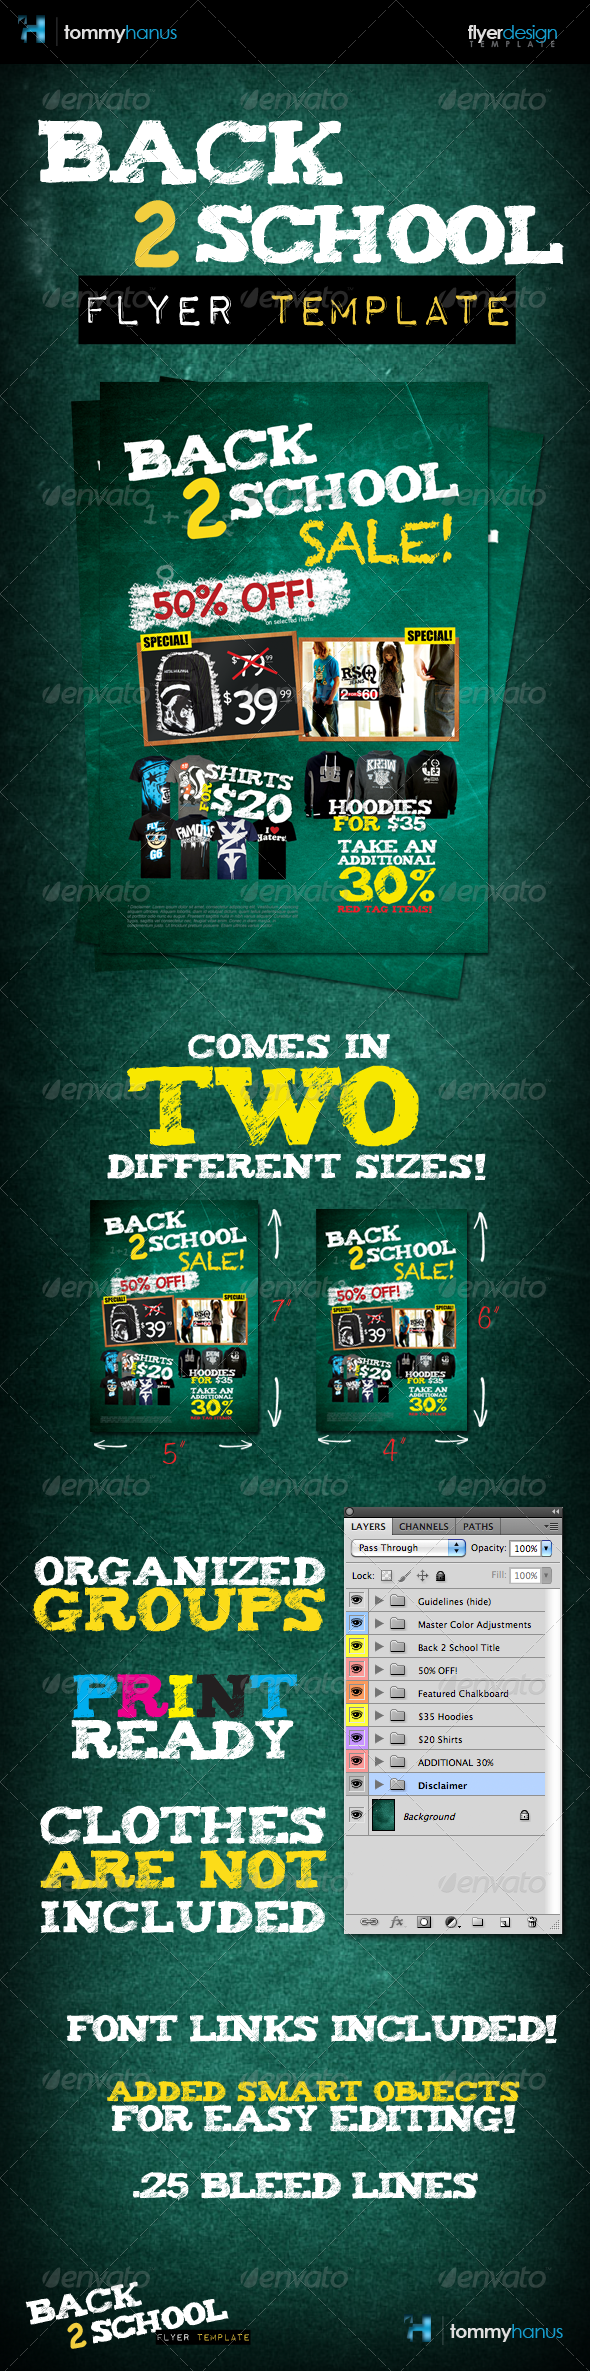 Back 2 School Flyer Template - Commerce Flyers